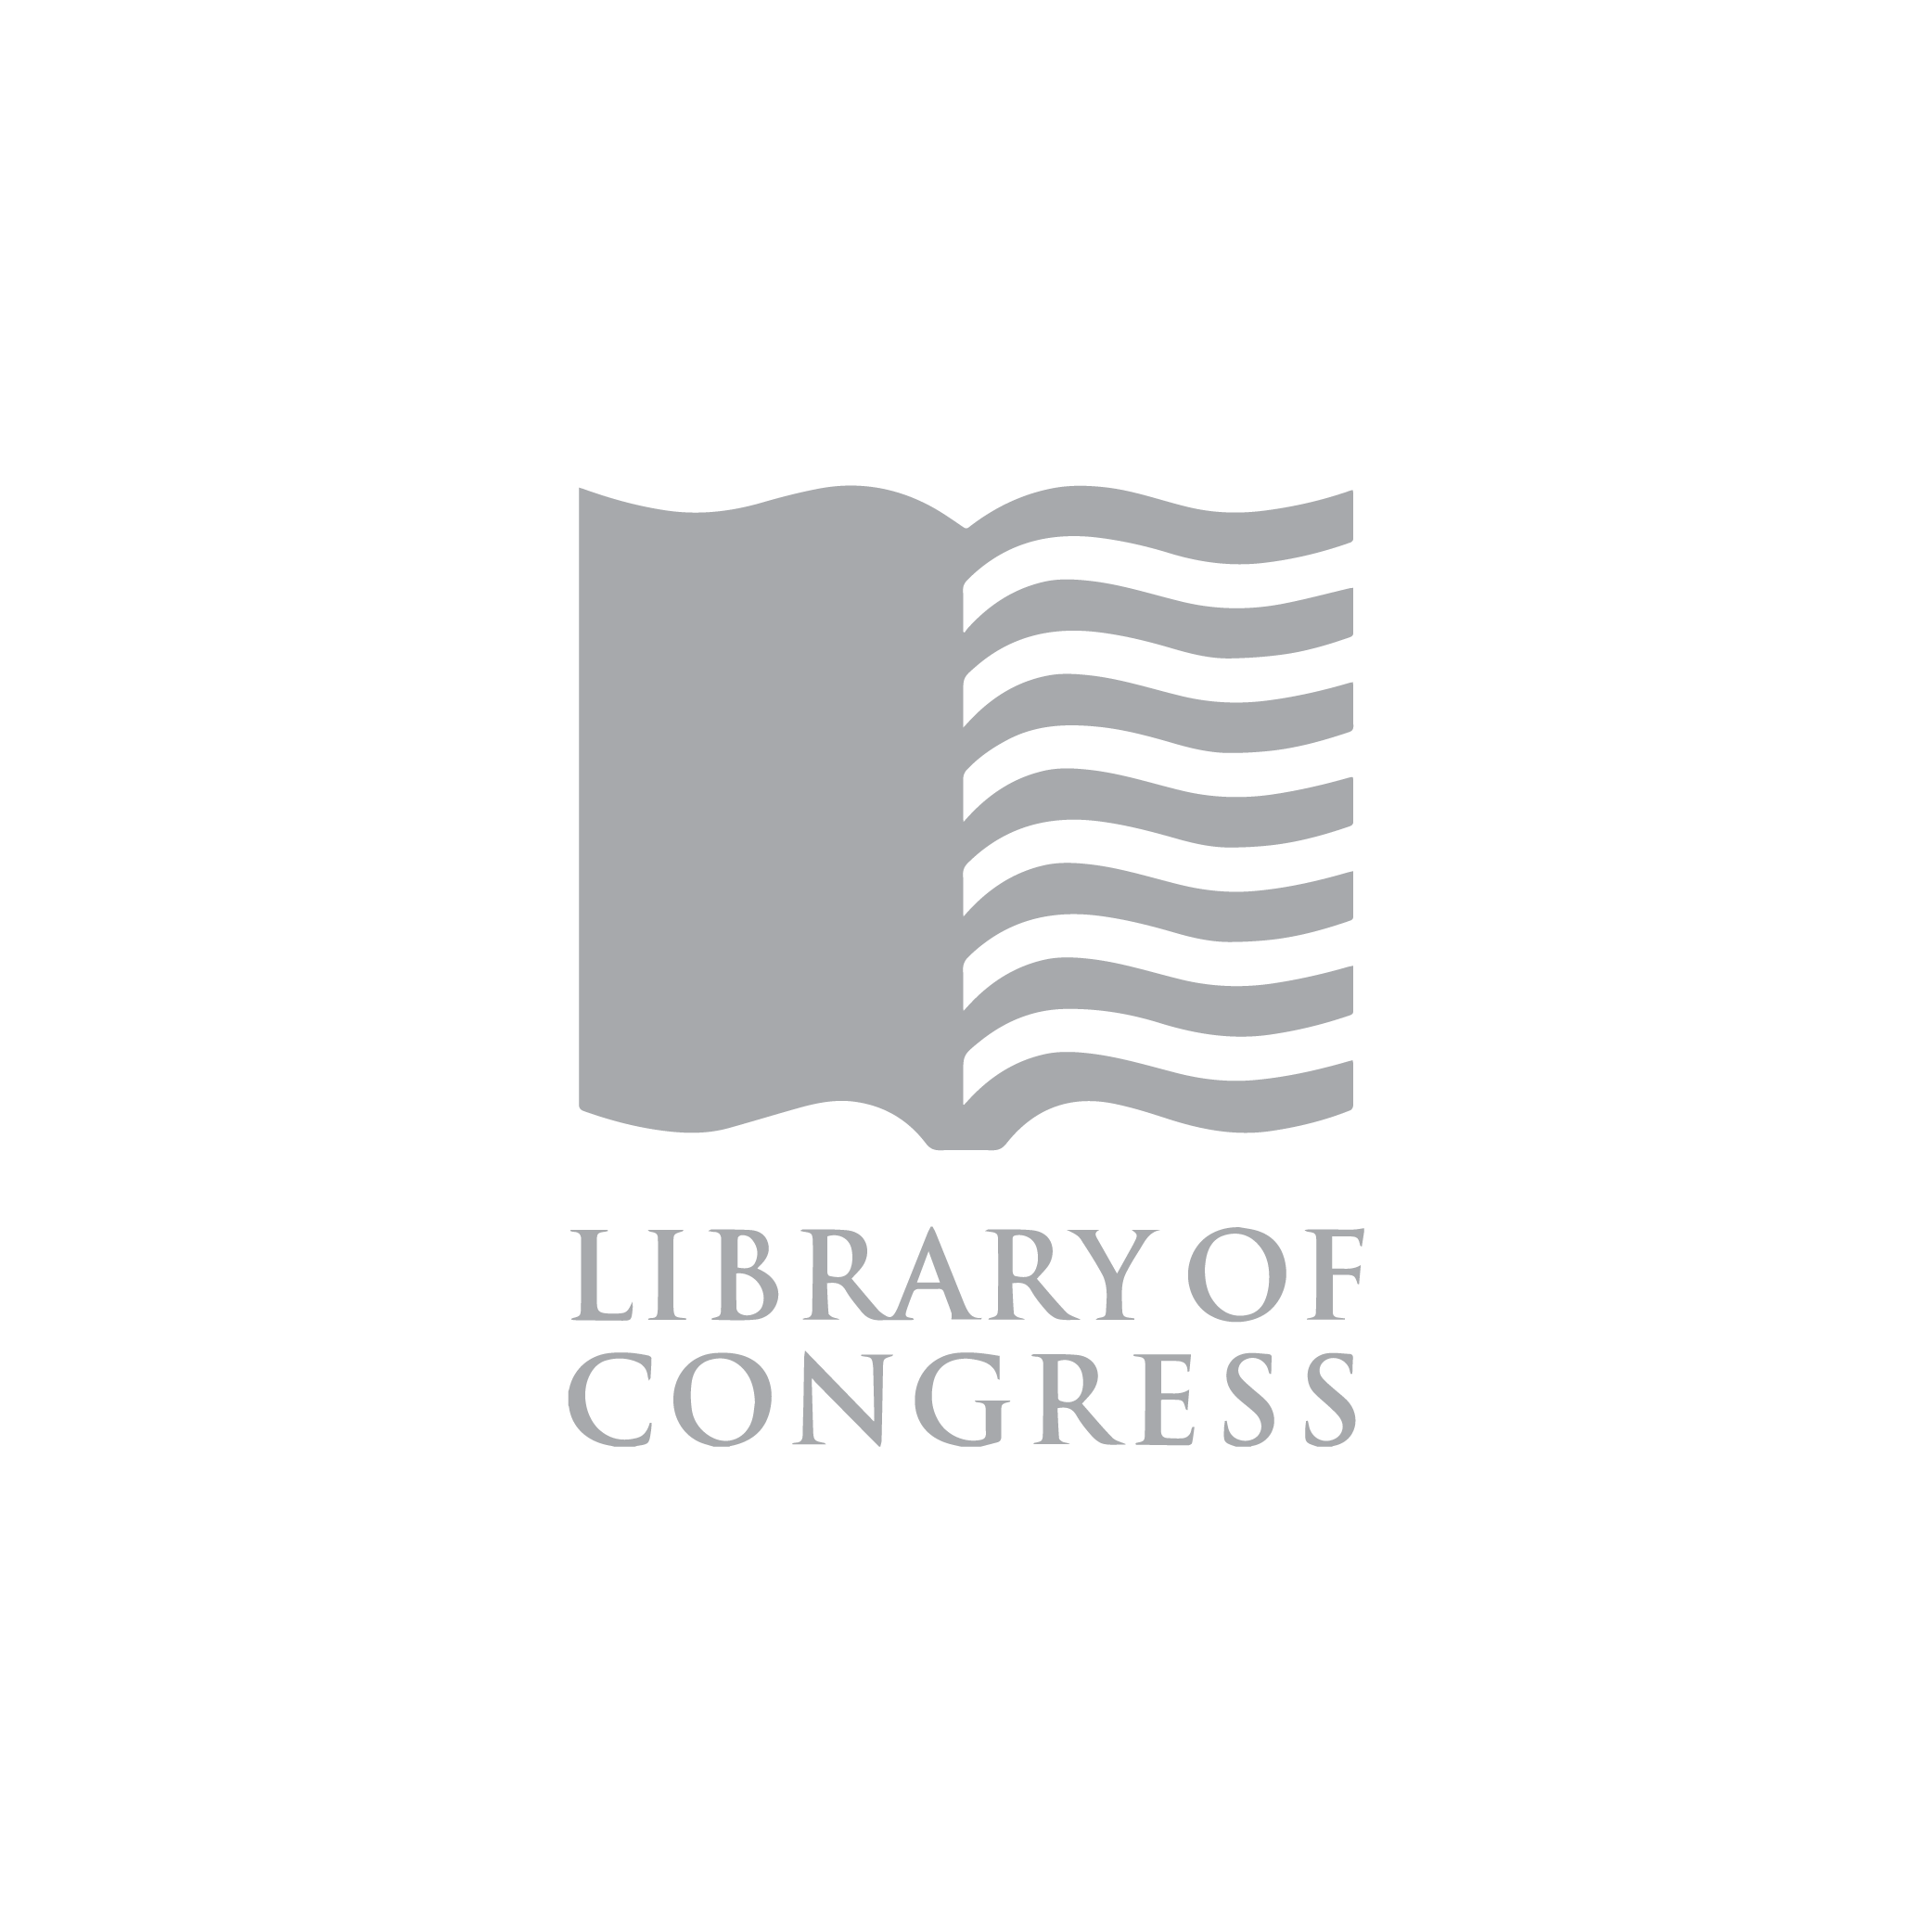 Library of Congress (Rare Books), Washington D.C.